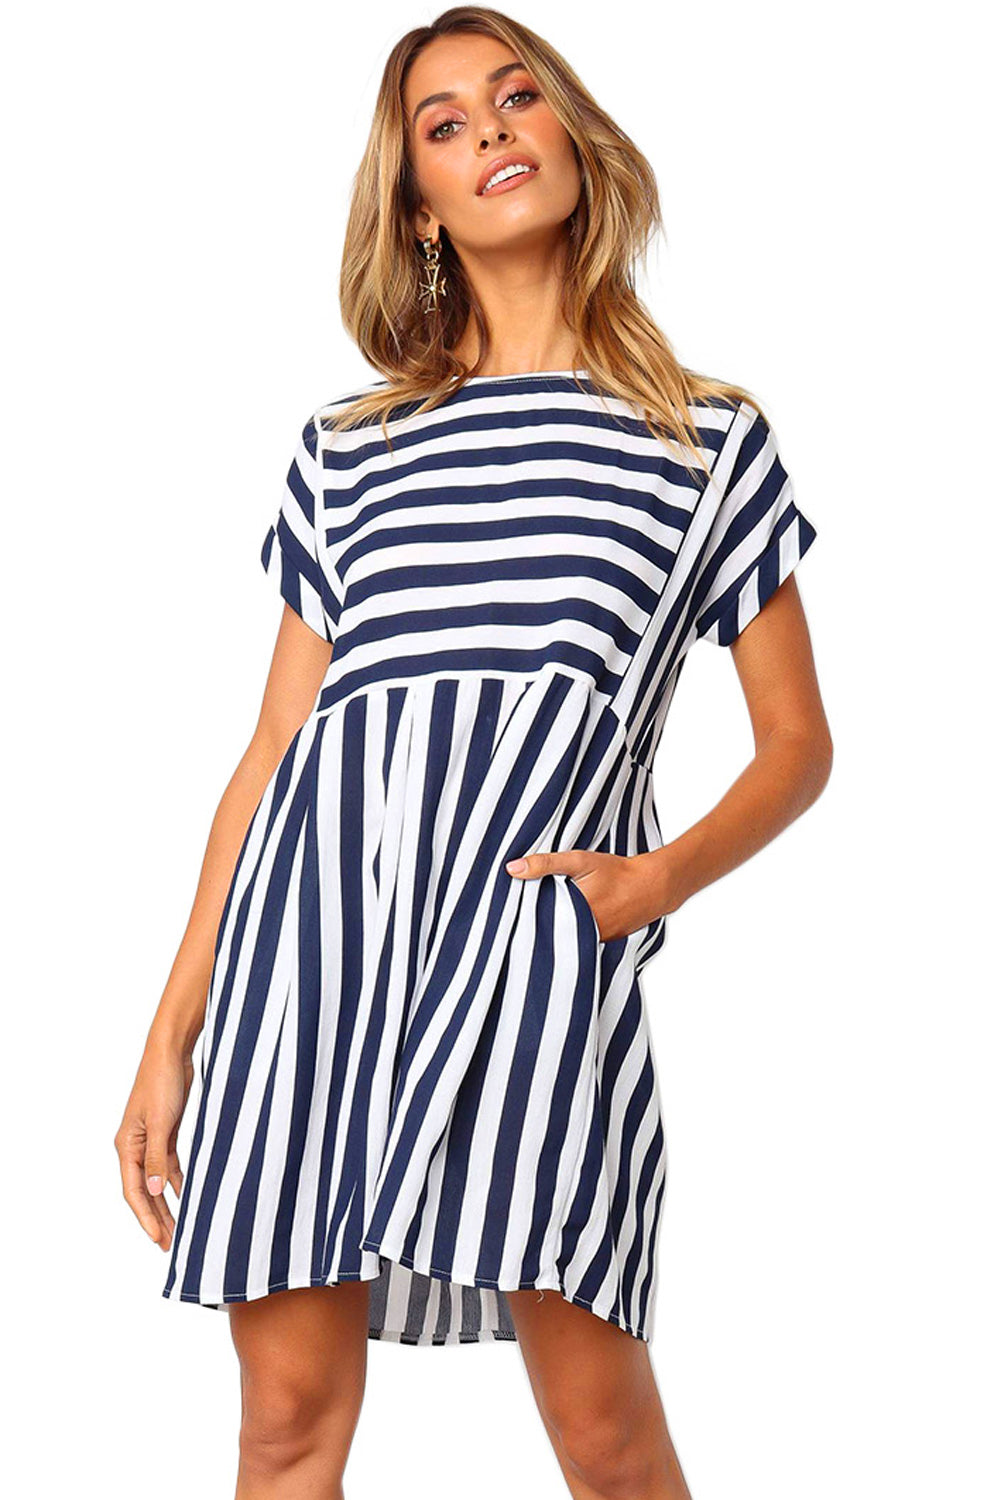 Blue Striped Casual Dress